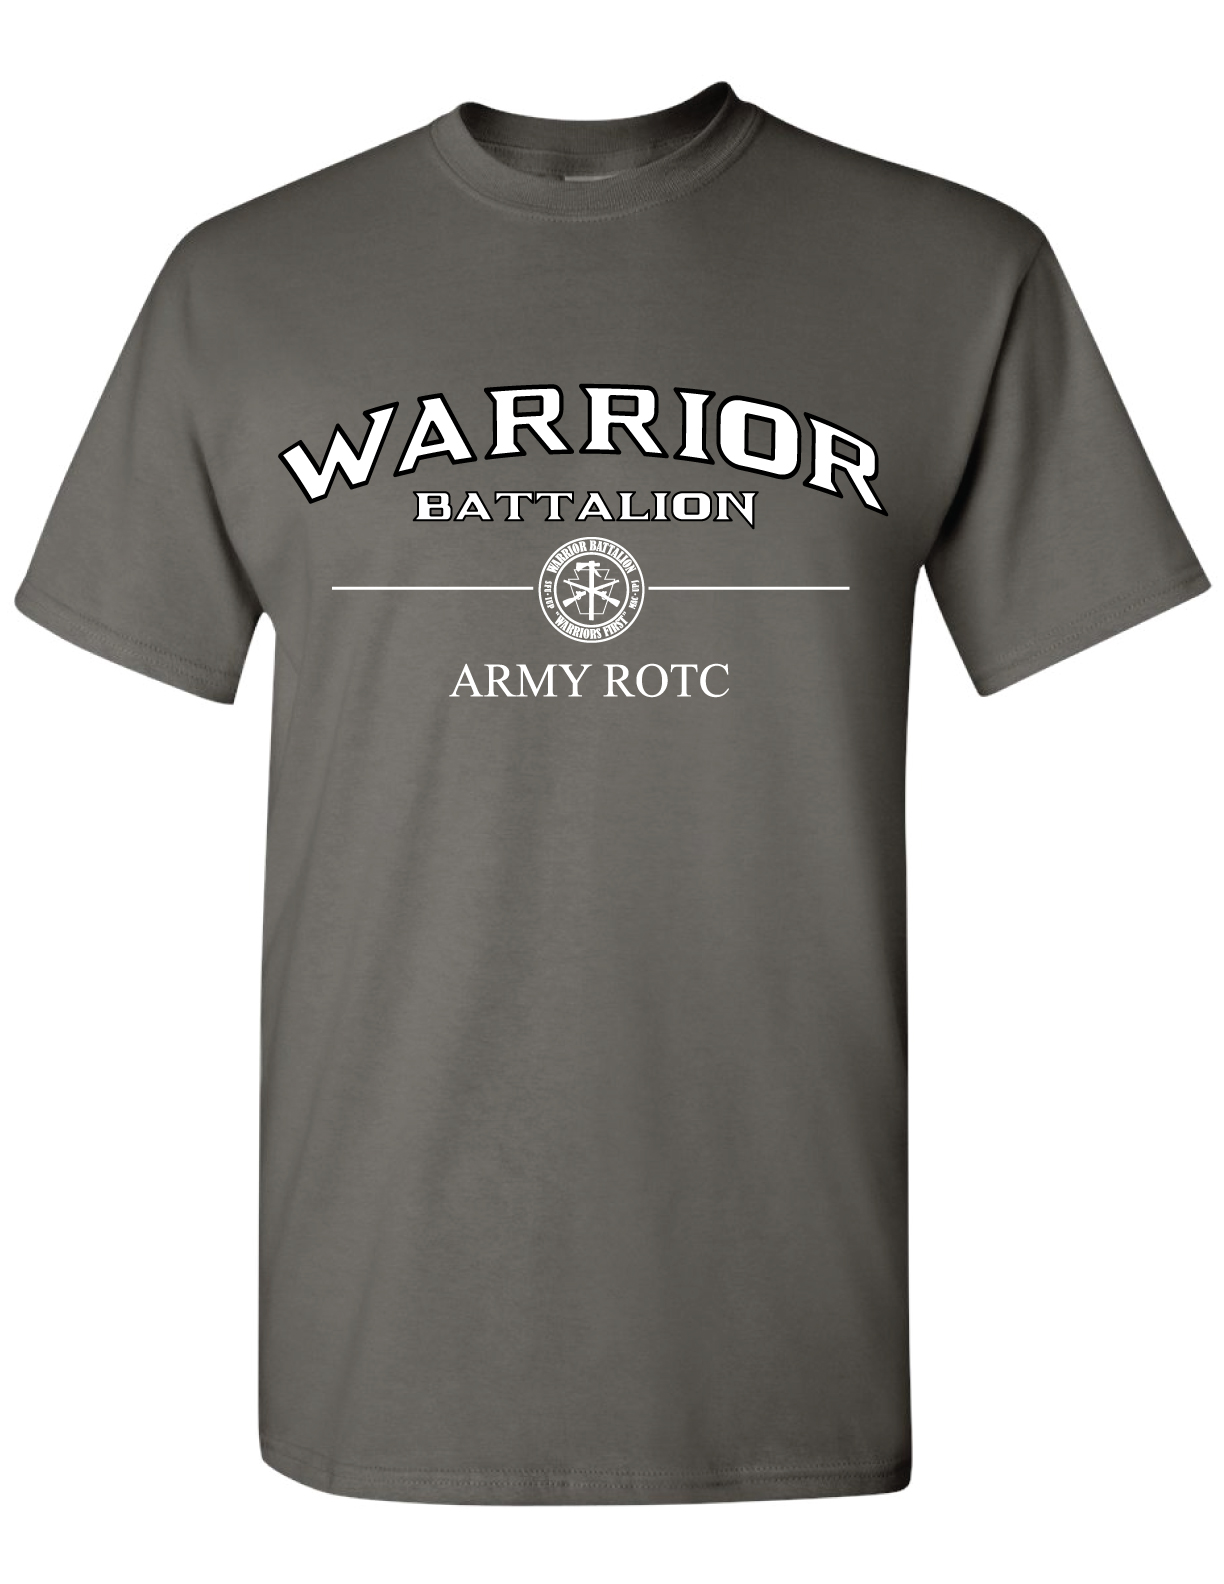 T-Shirt, Gray (Army ROTC)